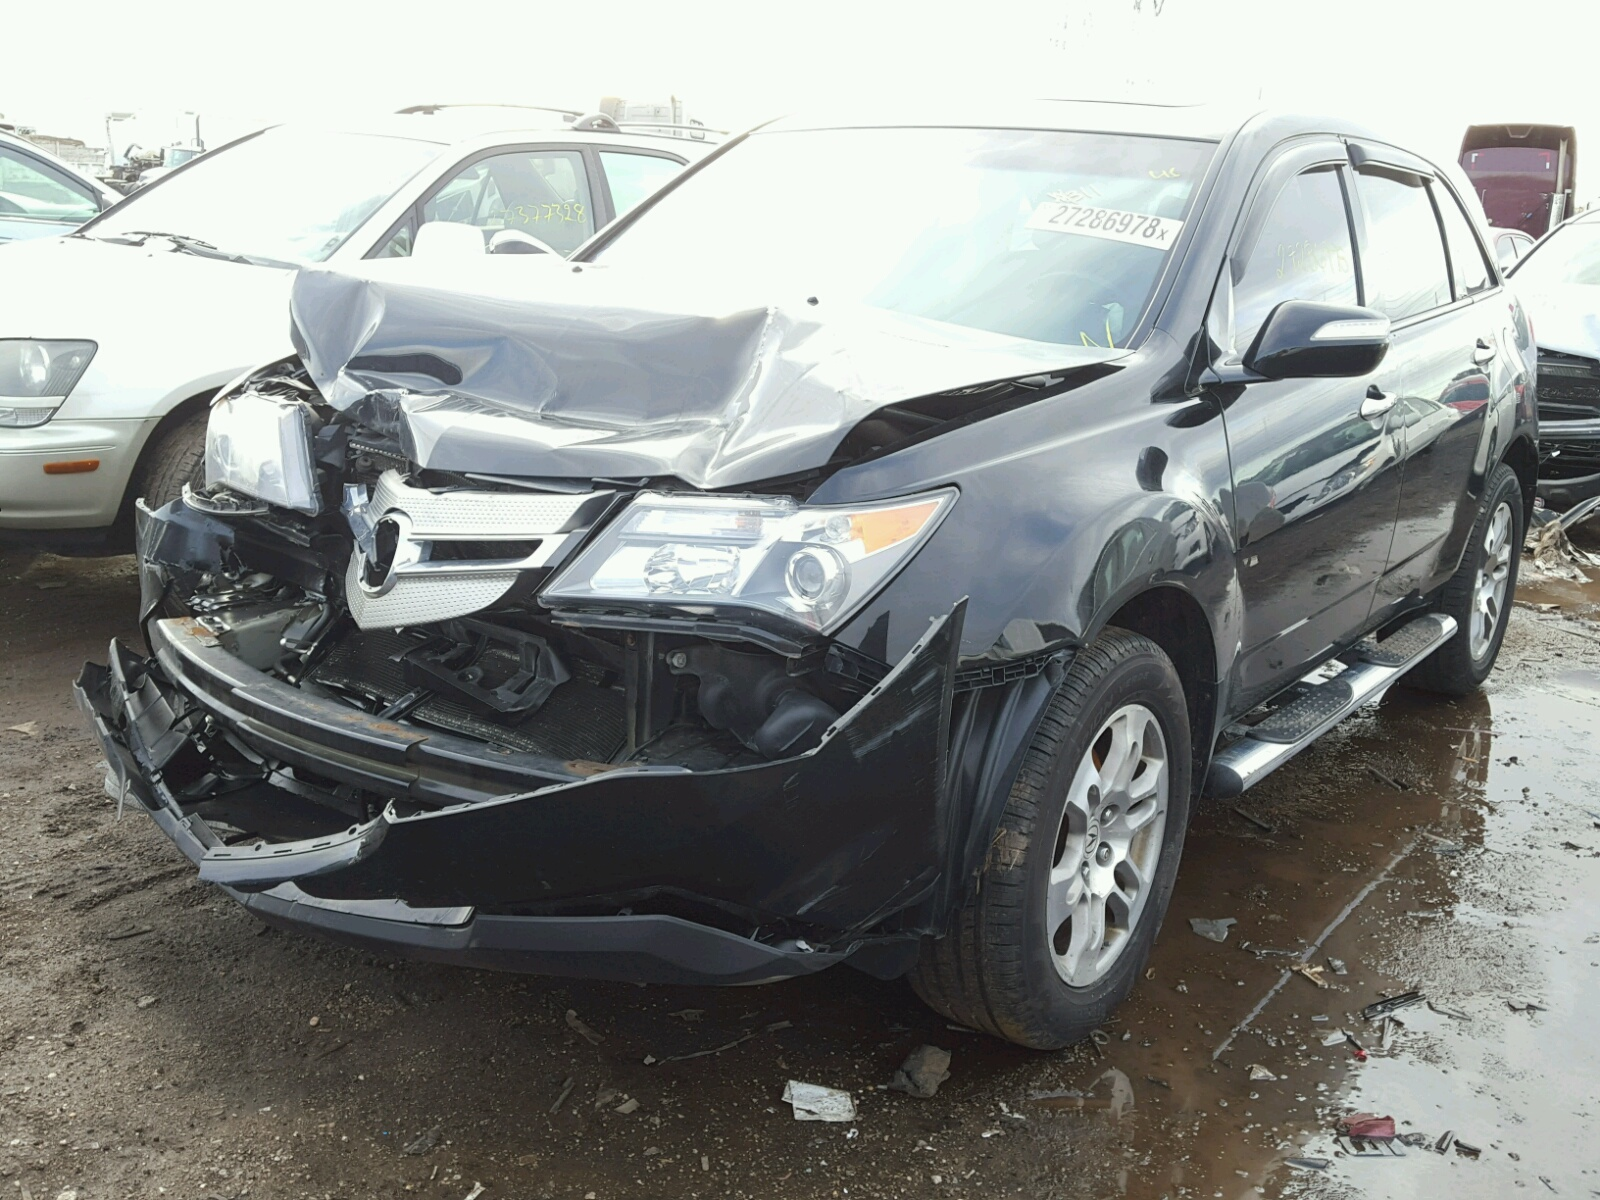 langhorne htm mdx for sale pa acura used